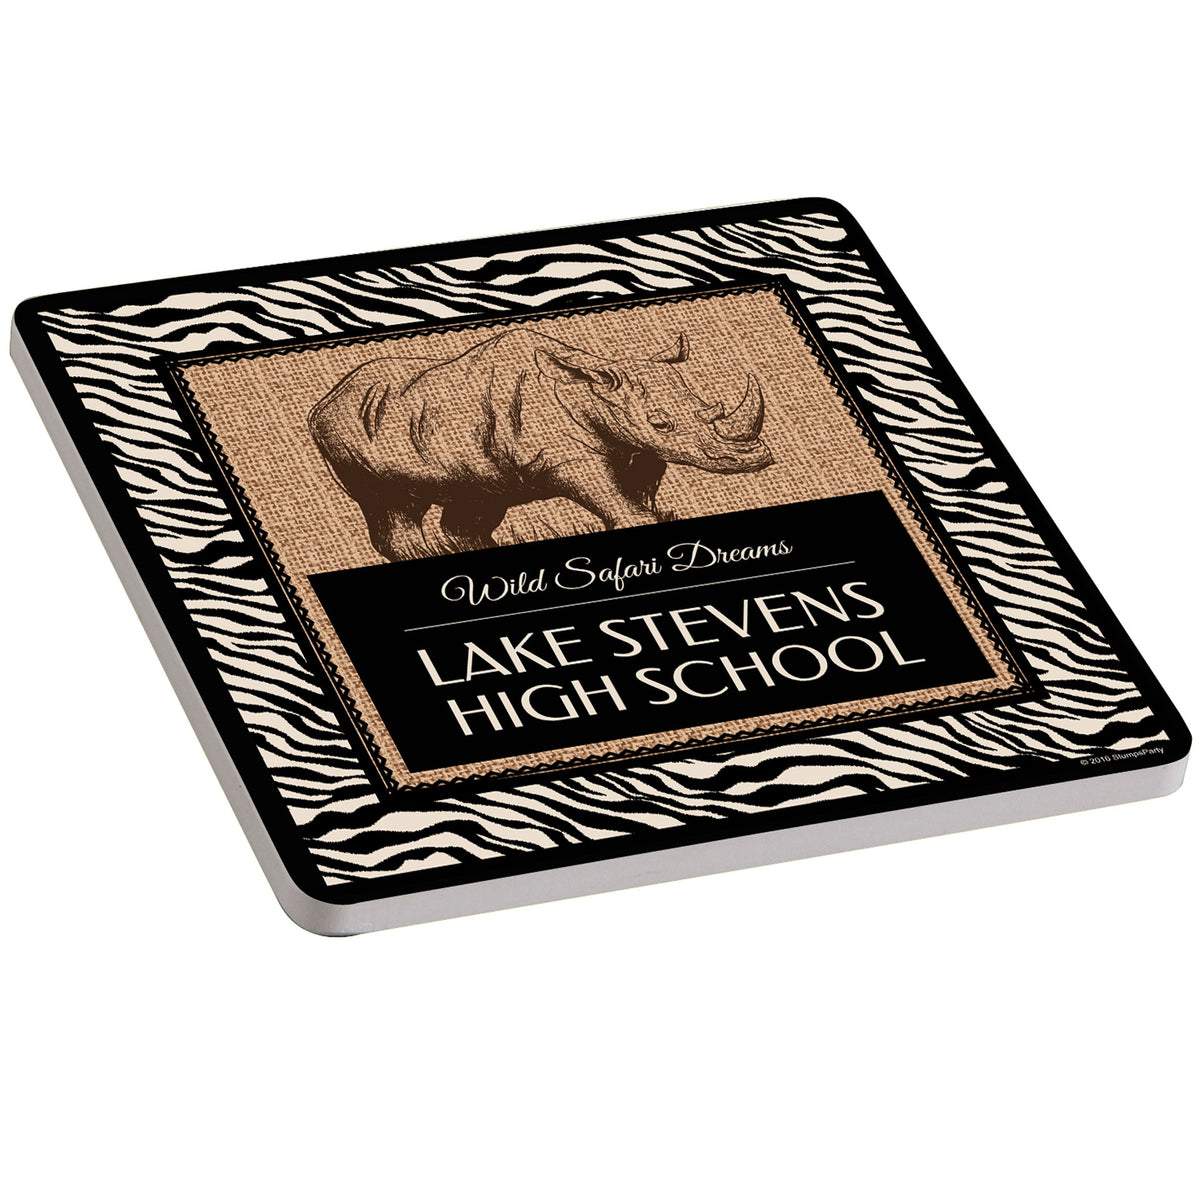 Wild Safari Dreams Personalized Ceramic Coaster